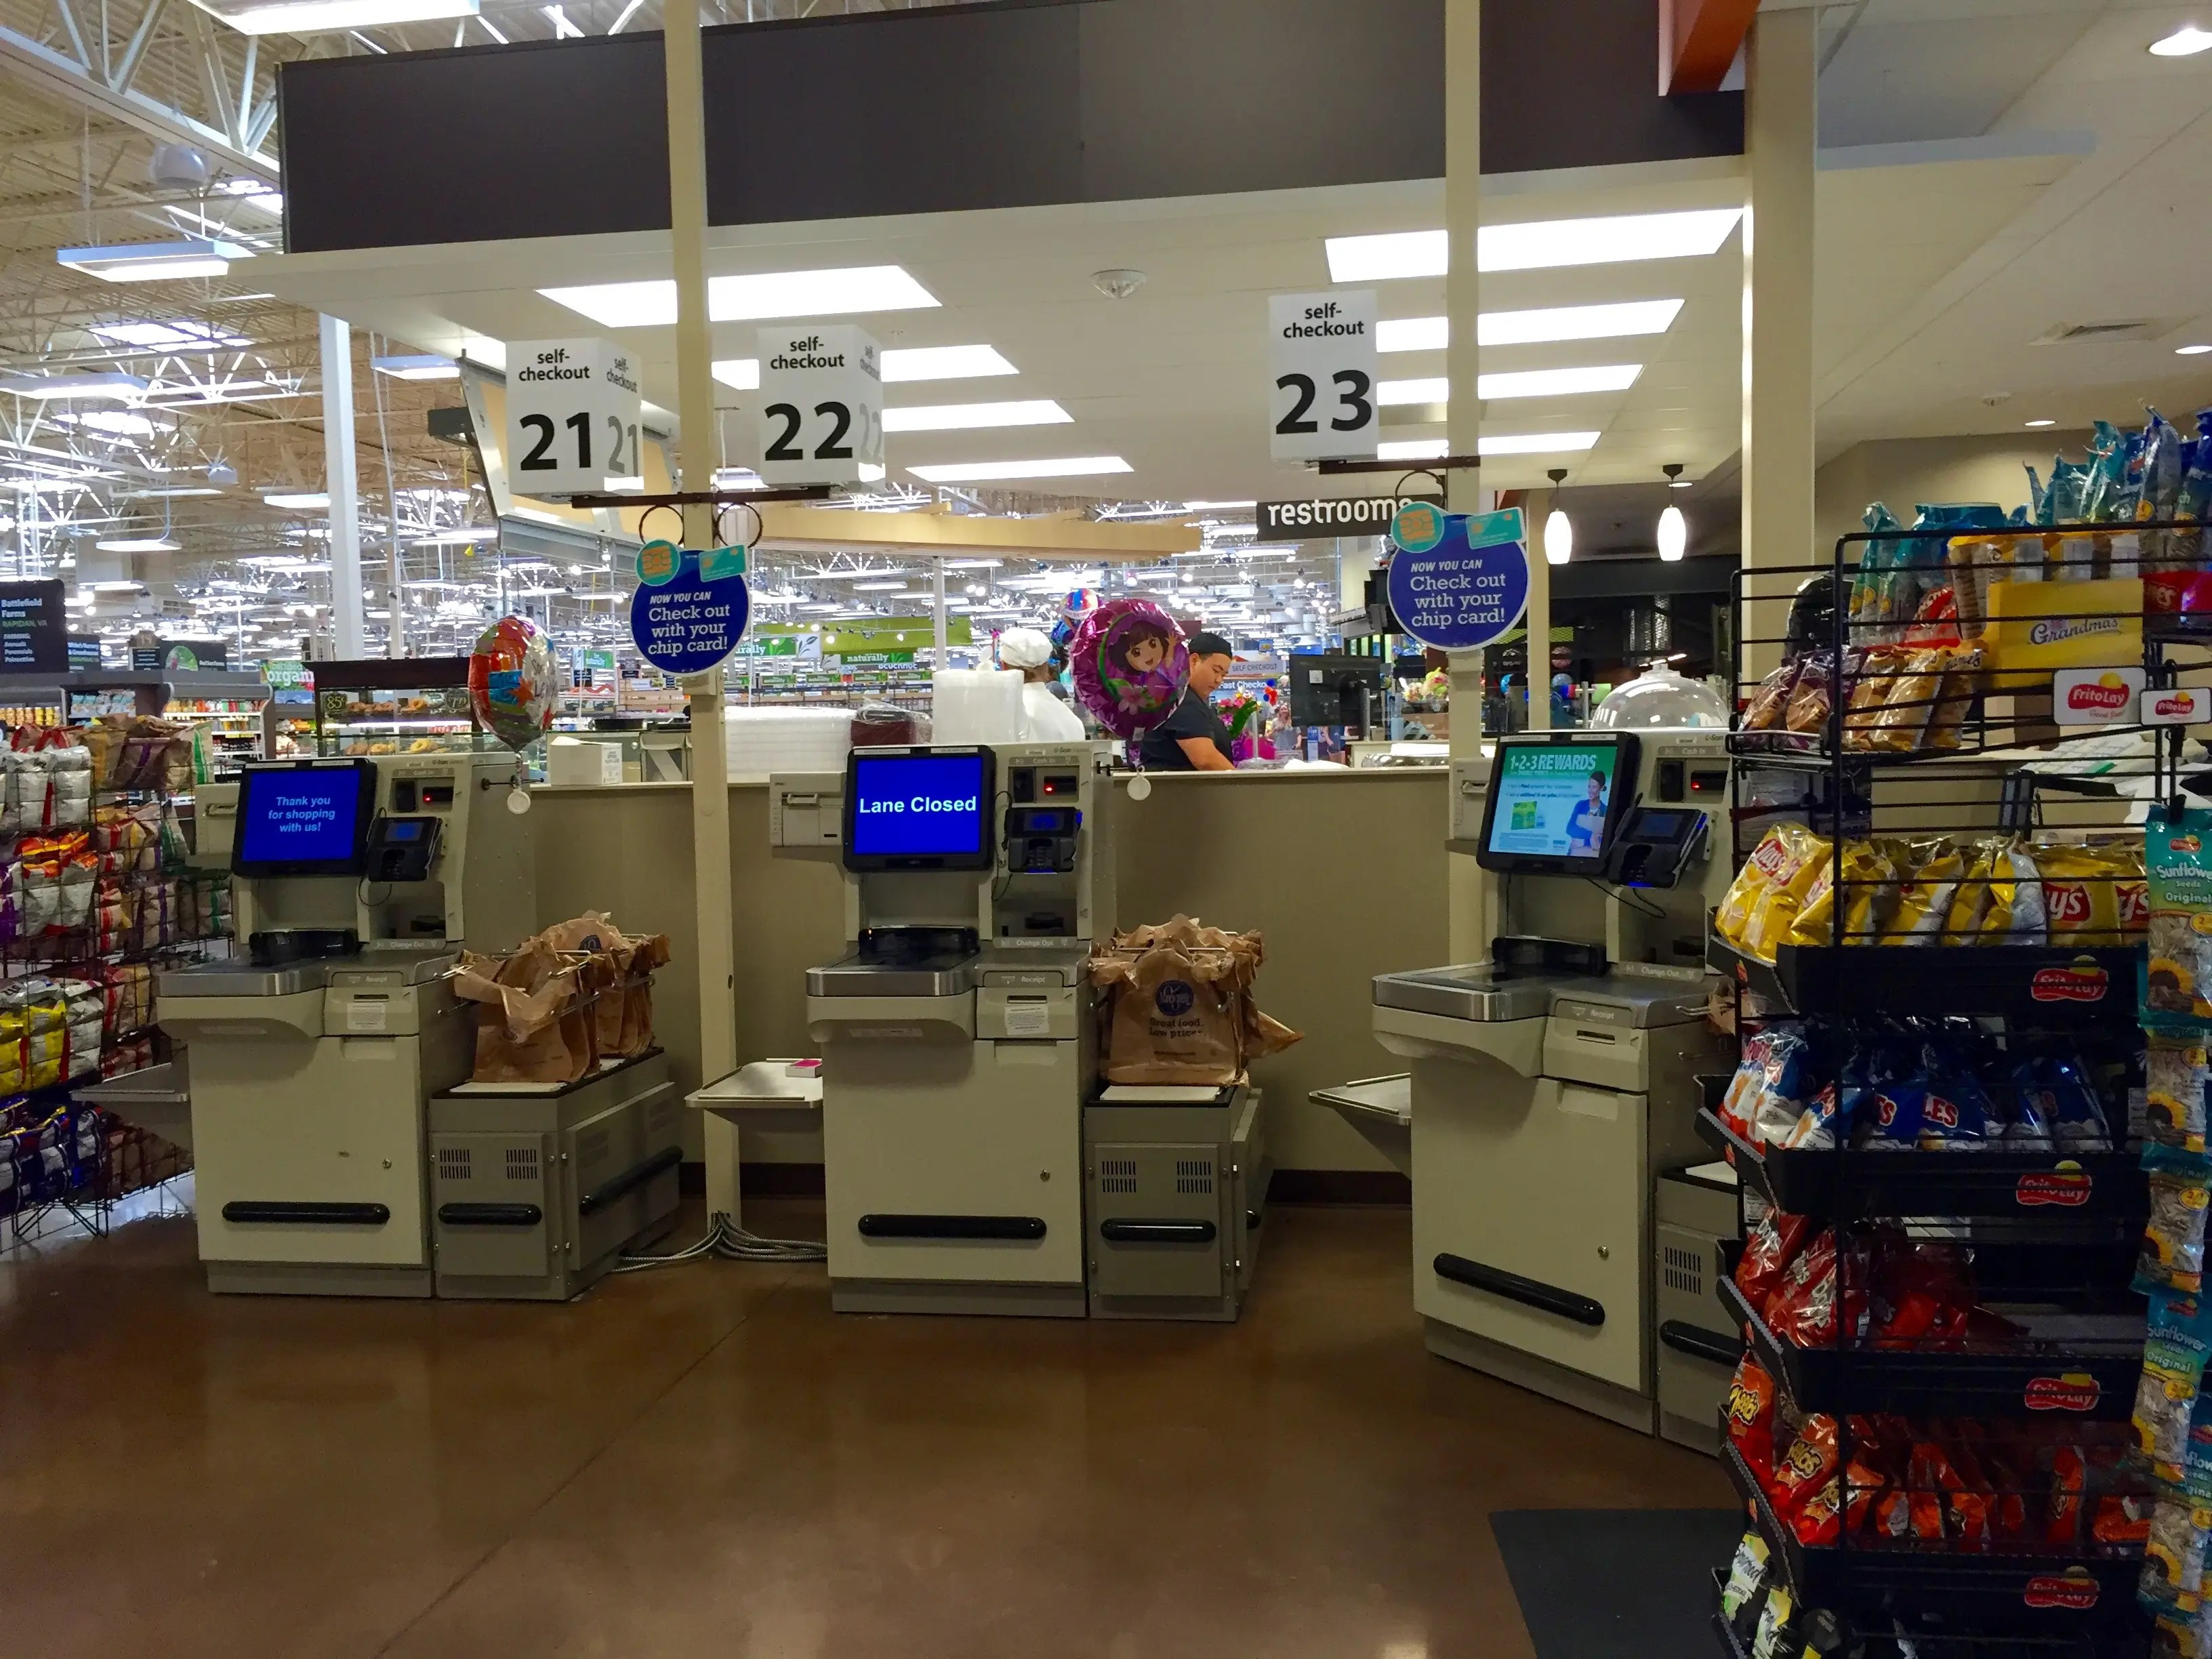 There are self-checkout registers near the prepared food counters so people grabbing lunch or dinner don't have to wait in long lines.